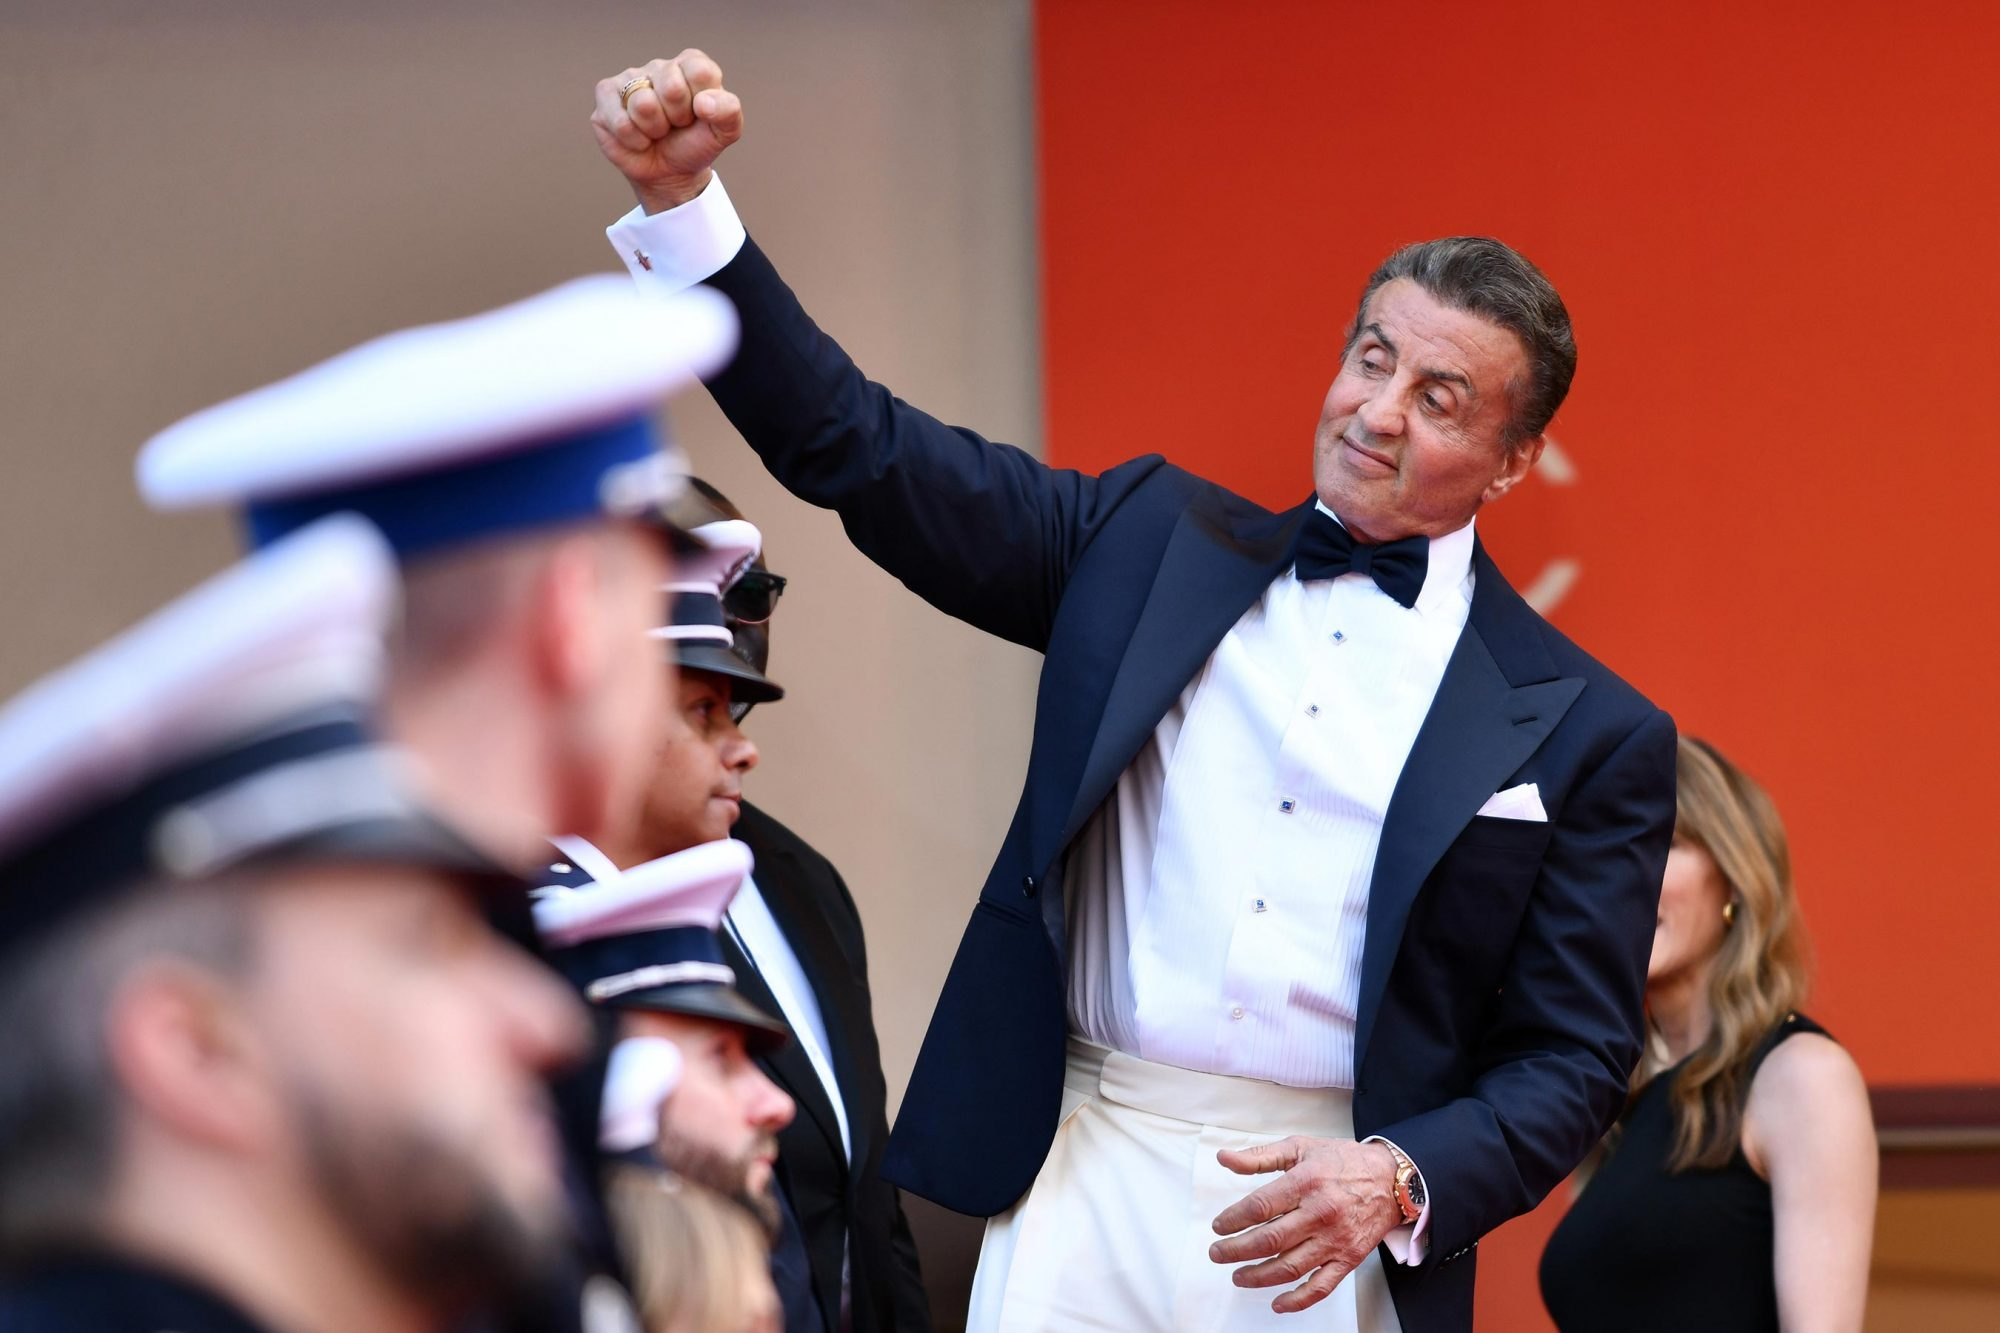 72nd Cannes Film Festival, Closing Award Ceremony Arrivals